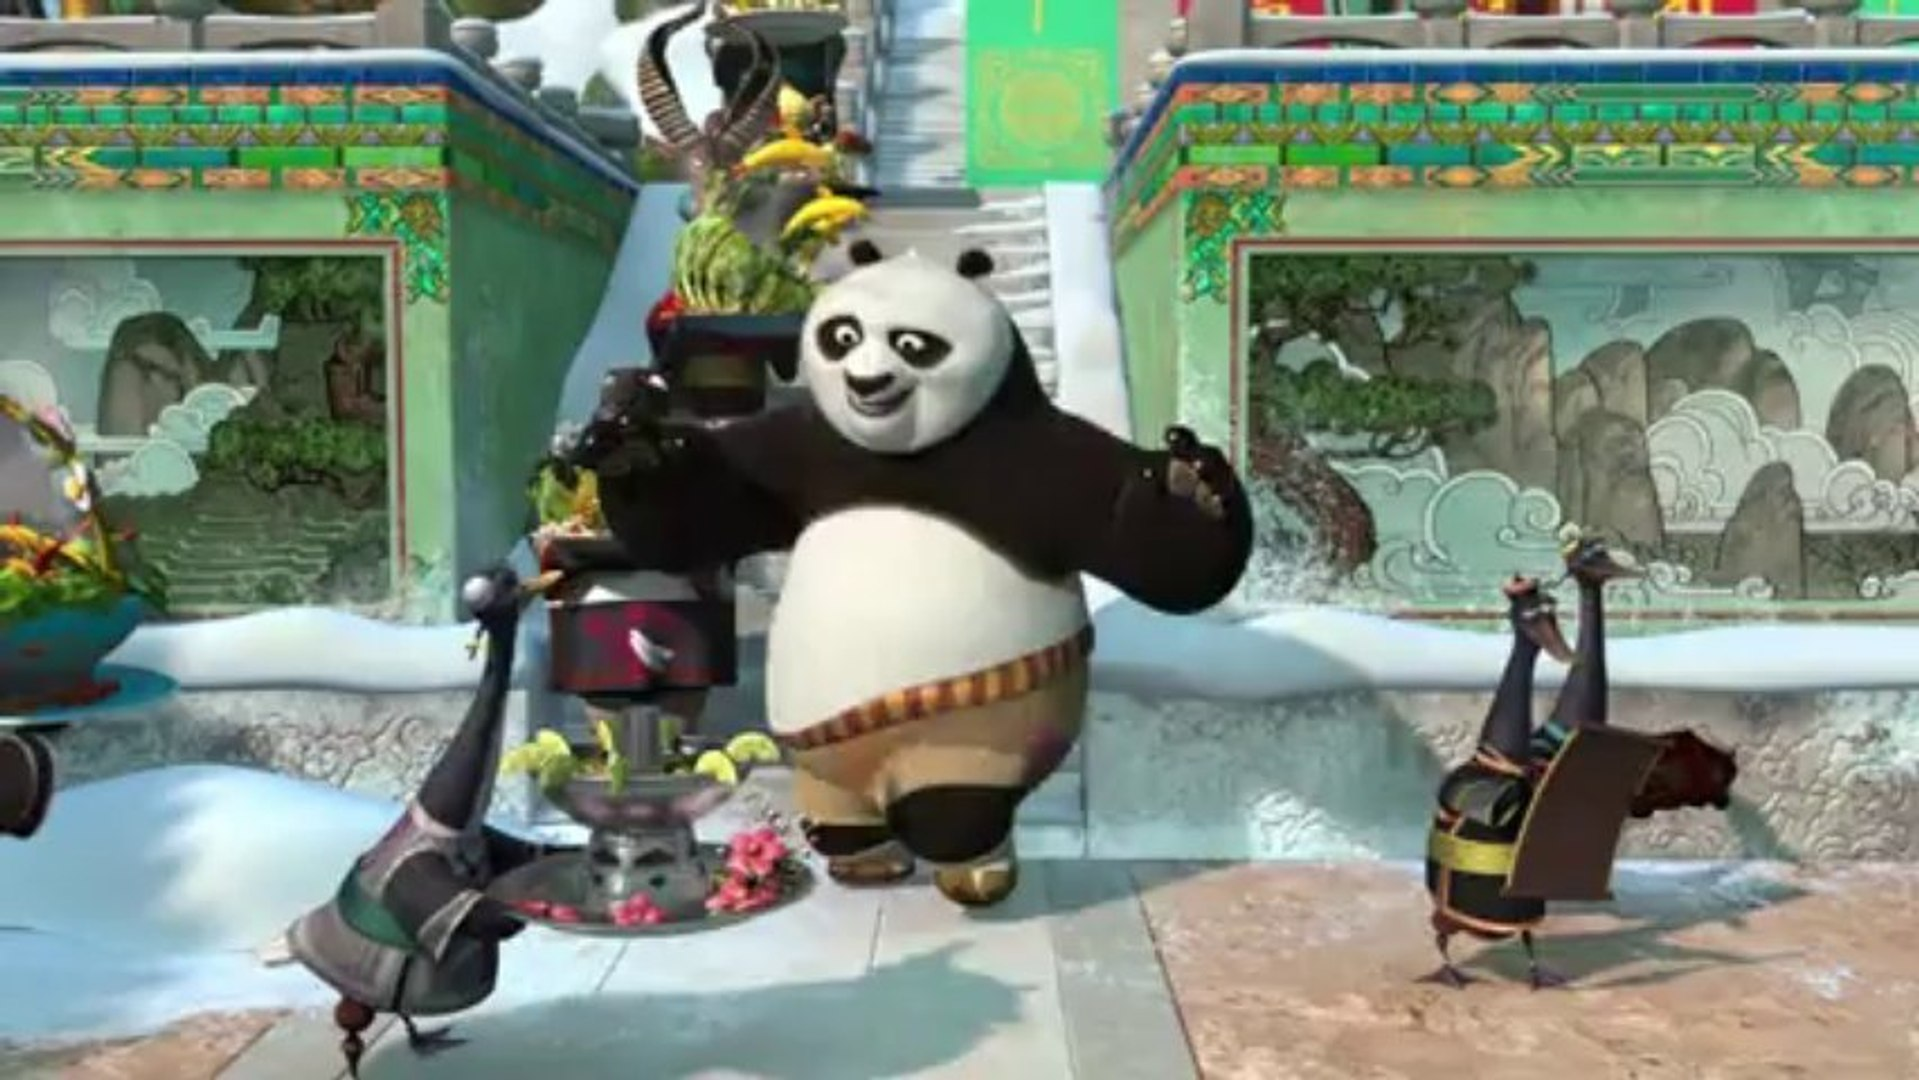 Lt Kung Fu Panda Holiday Special 2010 Video Dailymotion